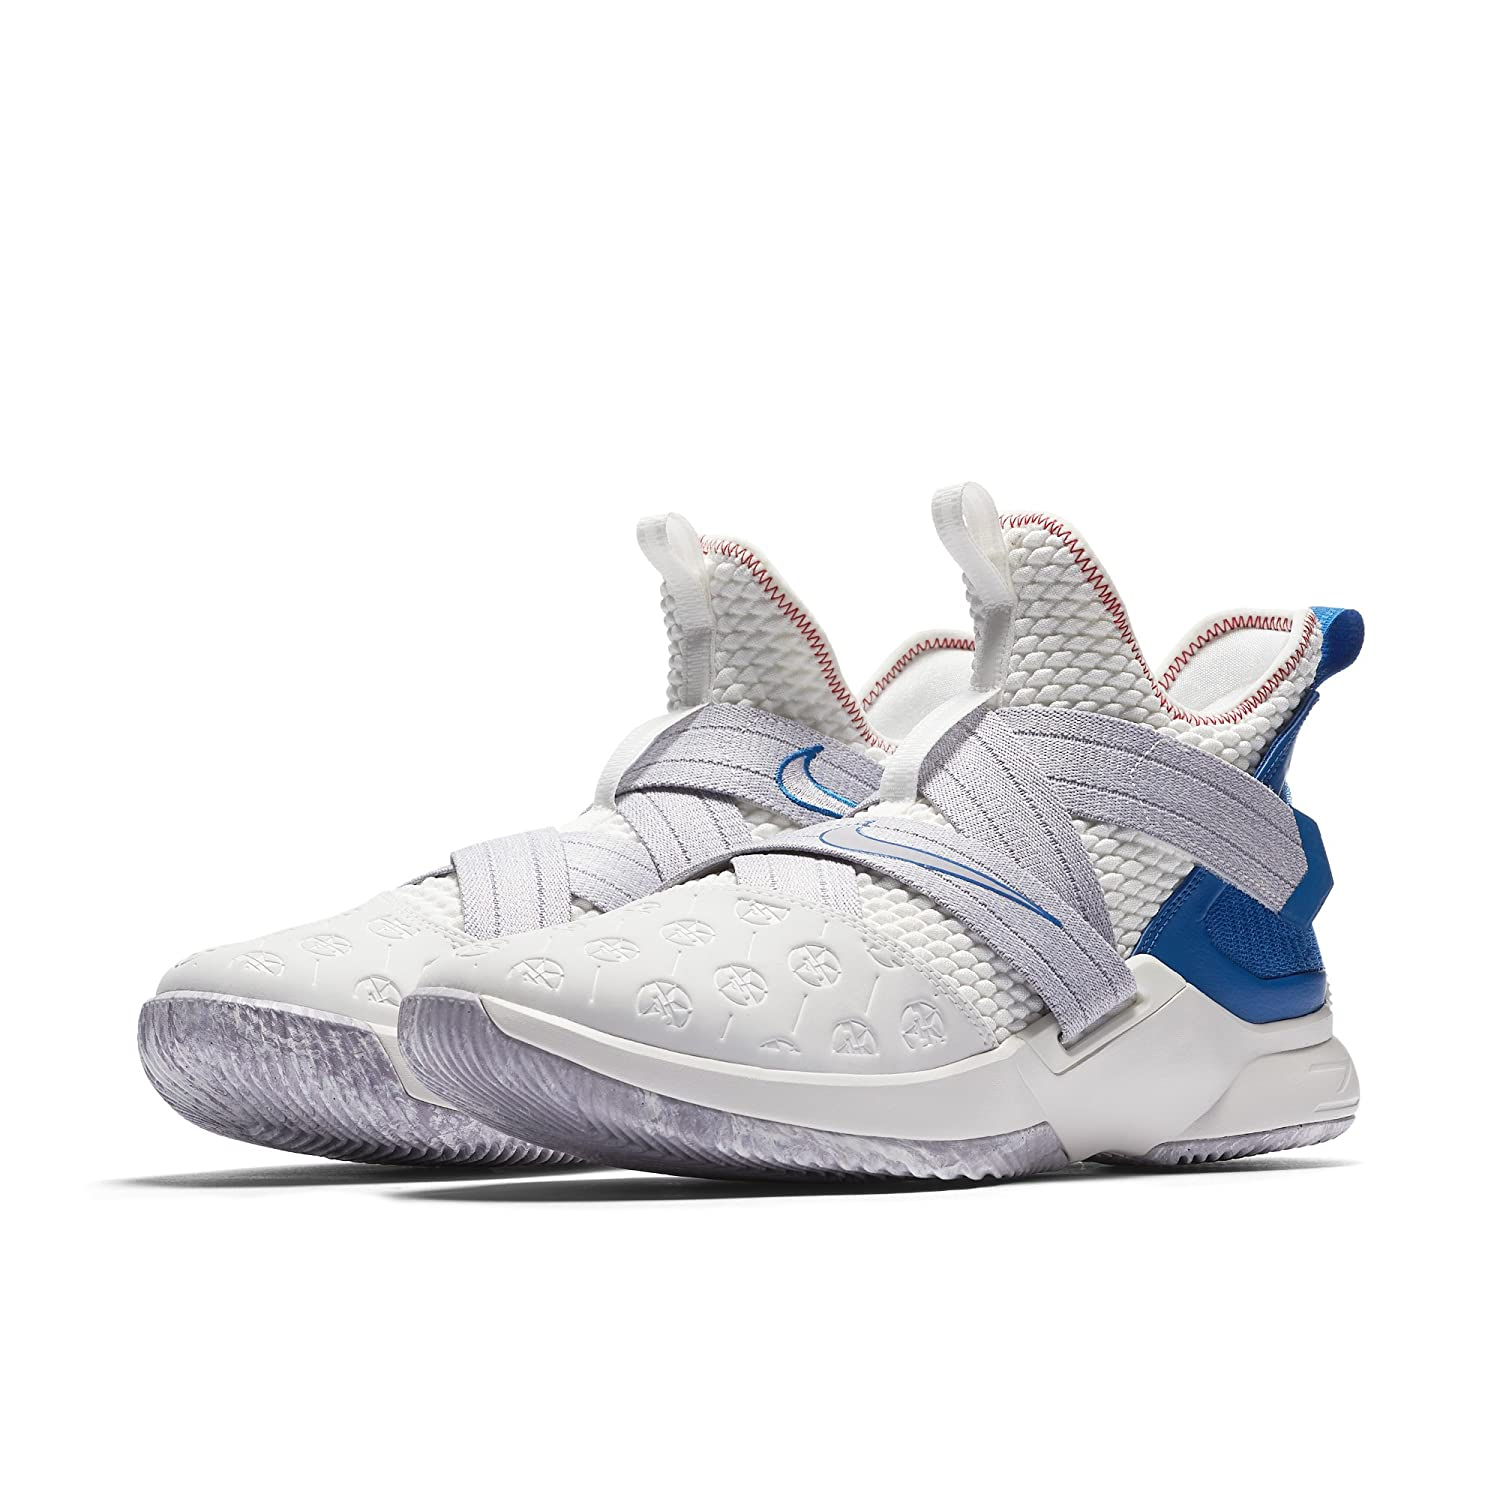 b790b100cb48 Amazon.com  NIKE Lebron Soldier XII Men s Sneakers AO2609-101 Size 8   Sports   Outdoors